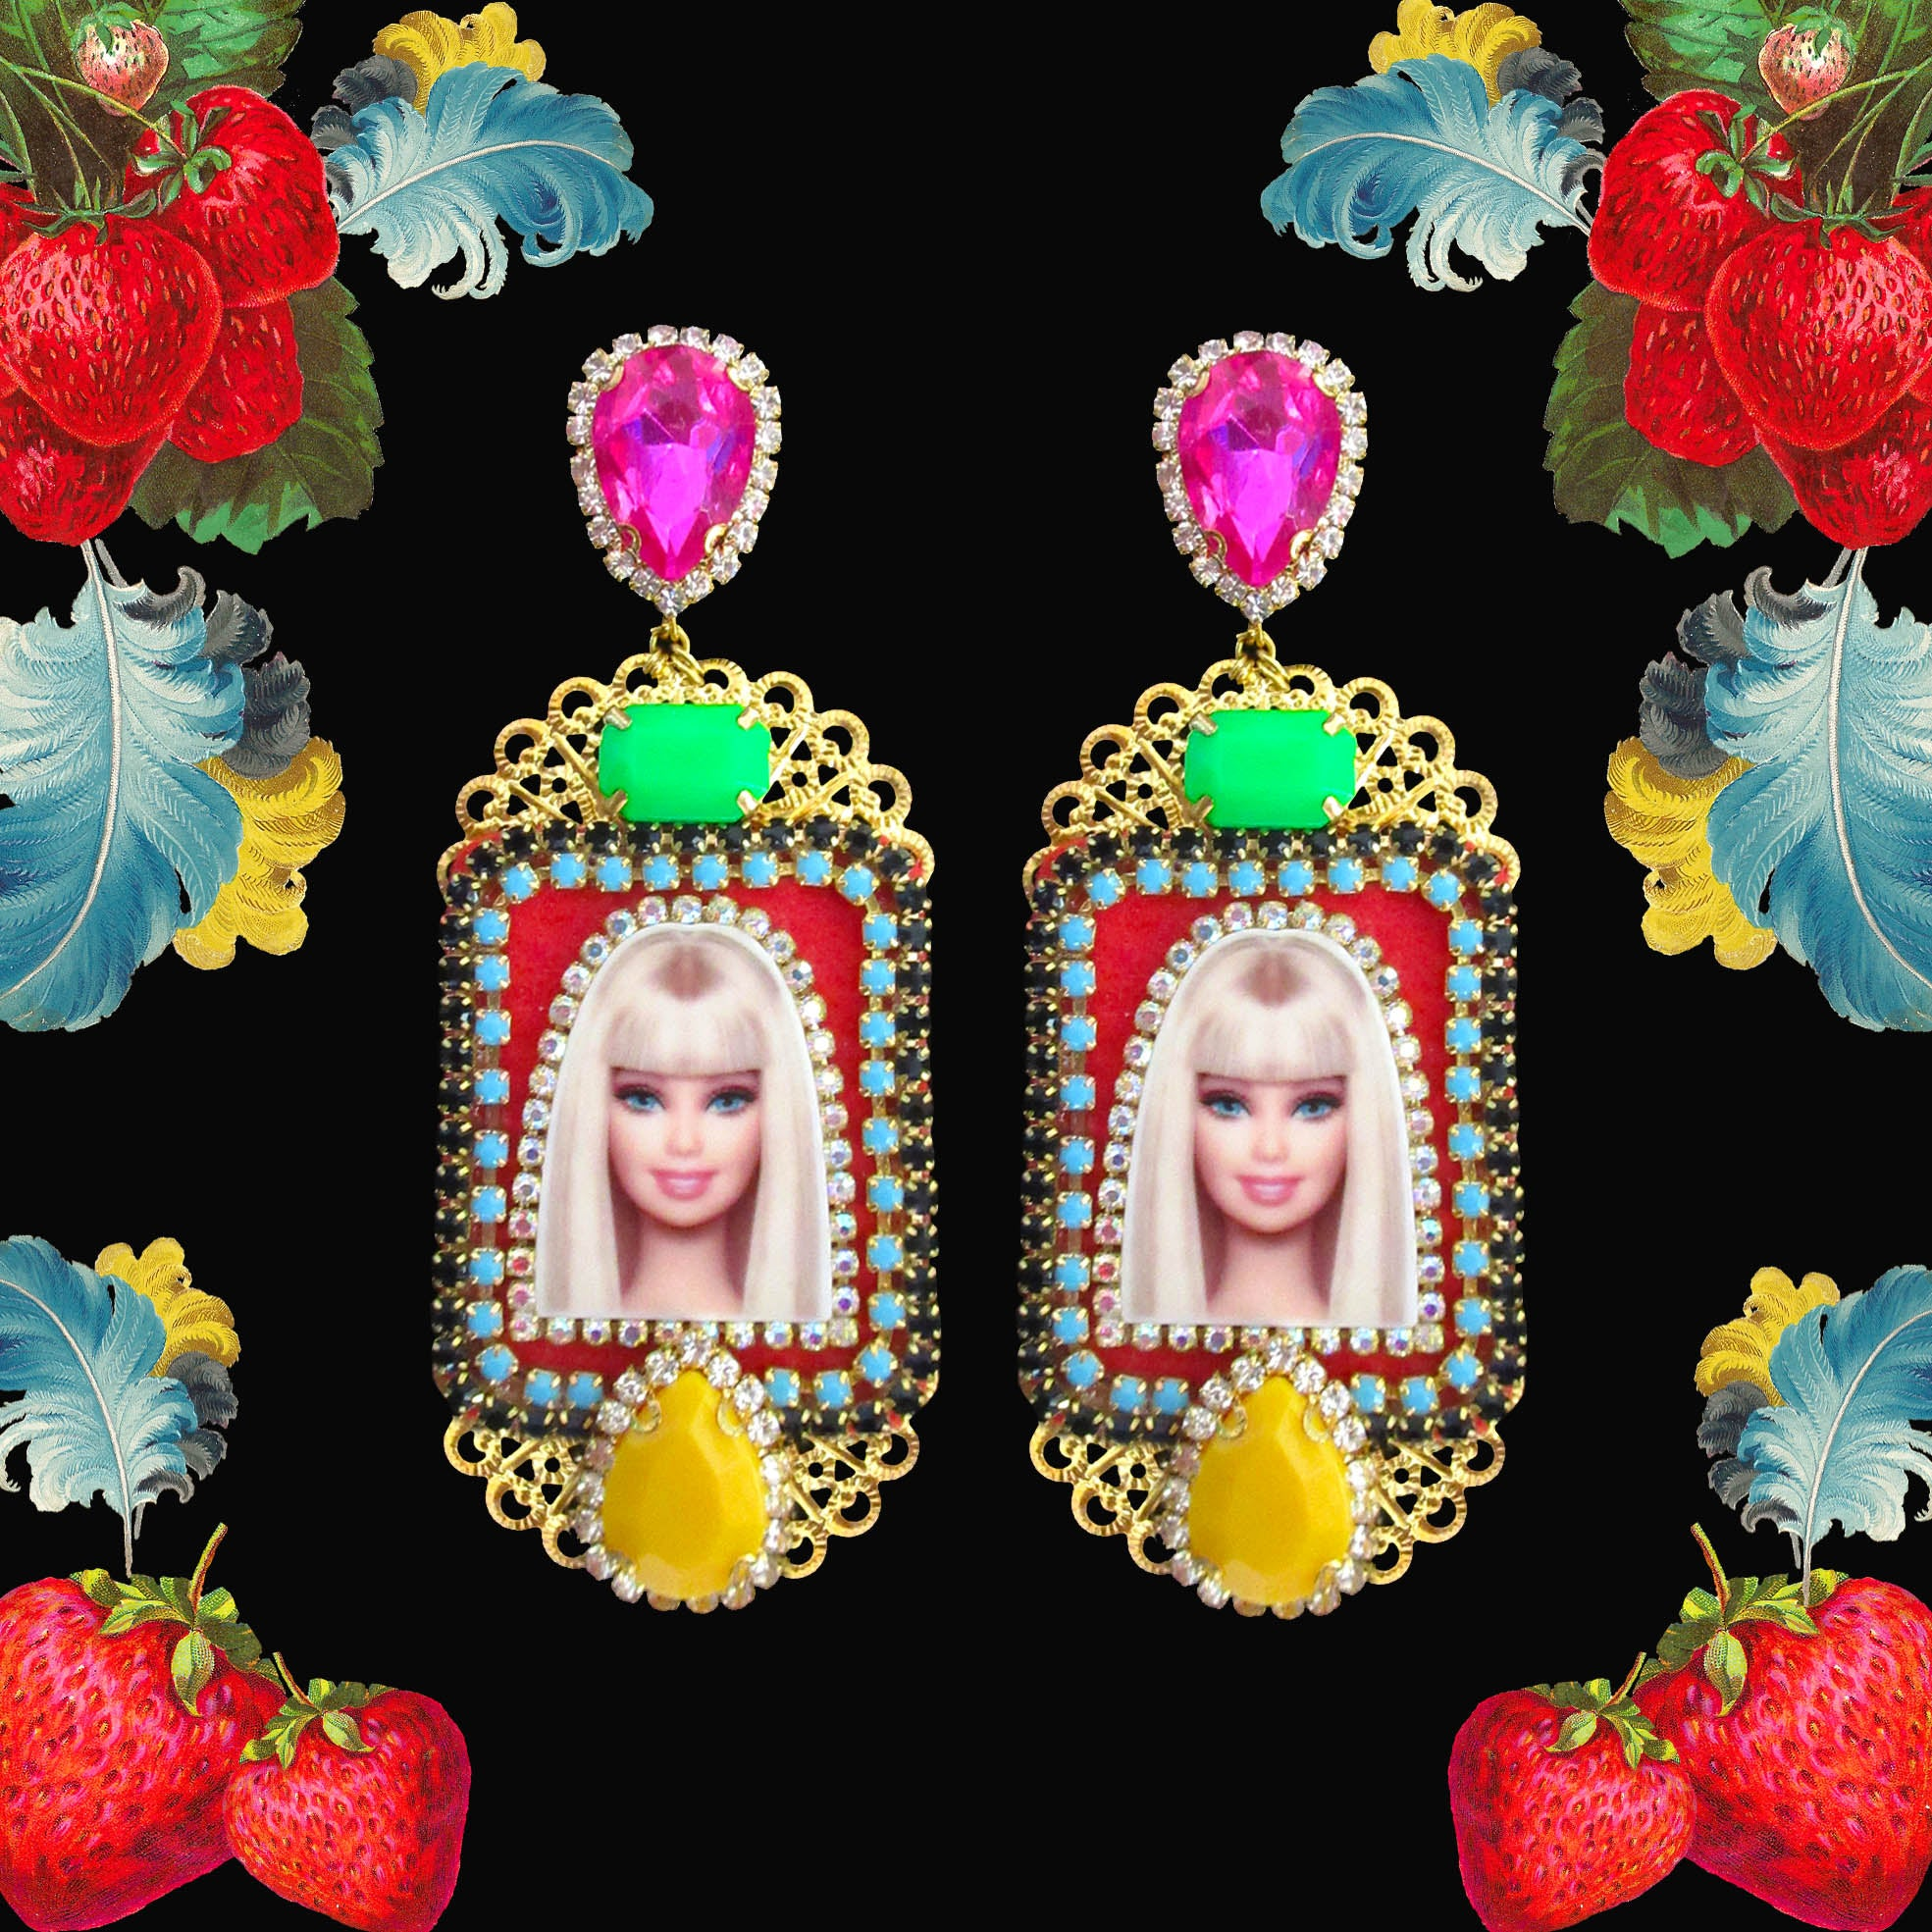 Mouchkine Jewelry Barbie pop culture luxury couture earrings. Handmade in france.